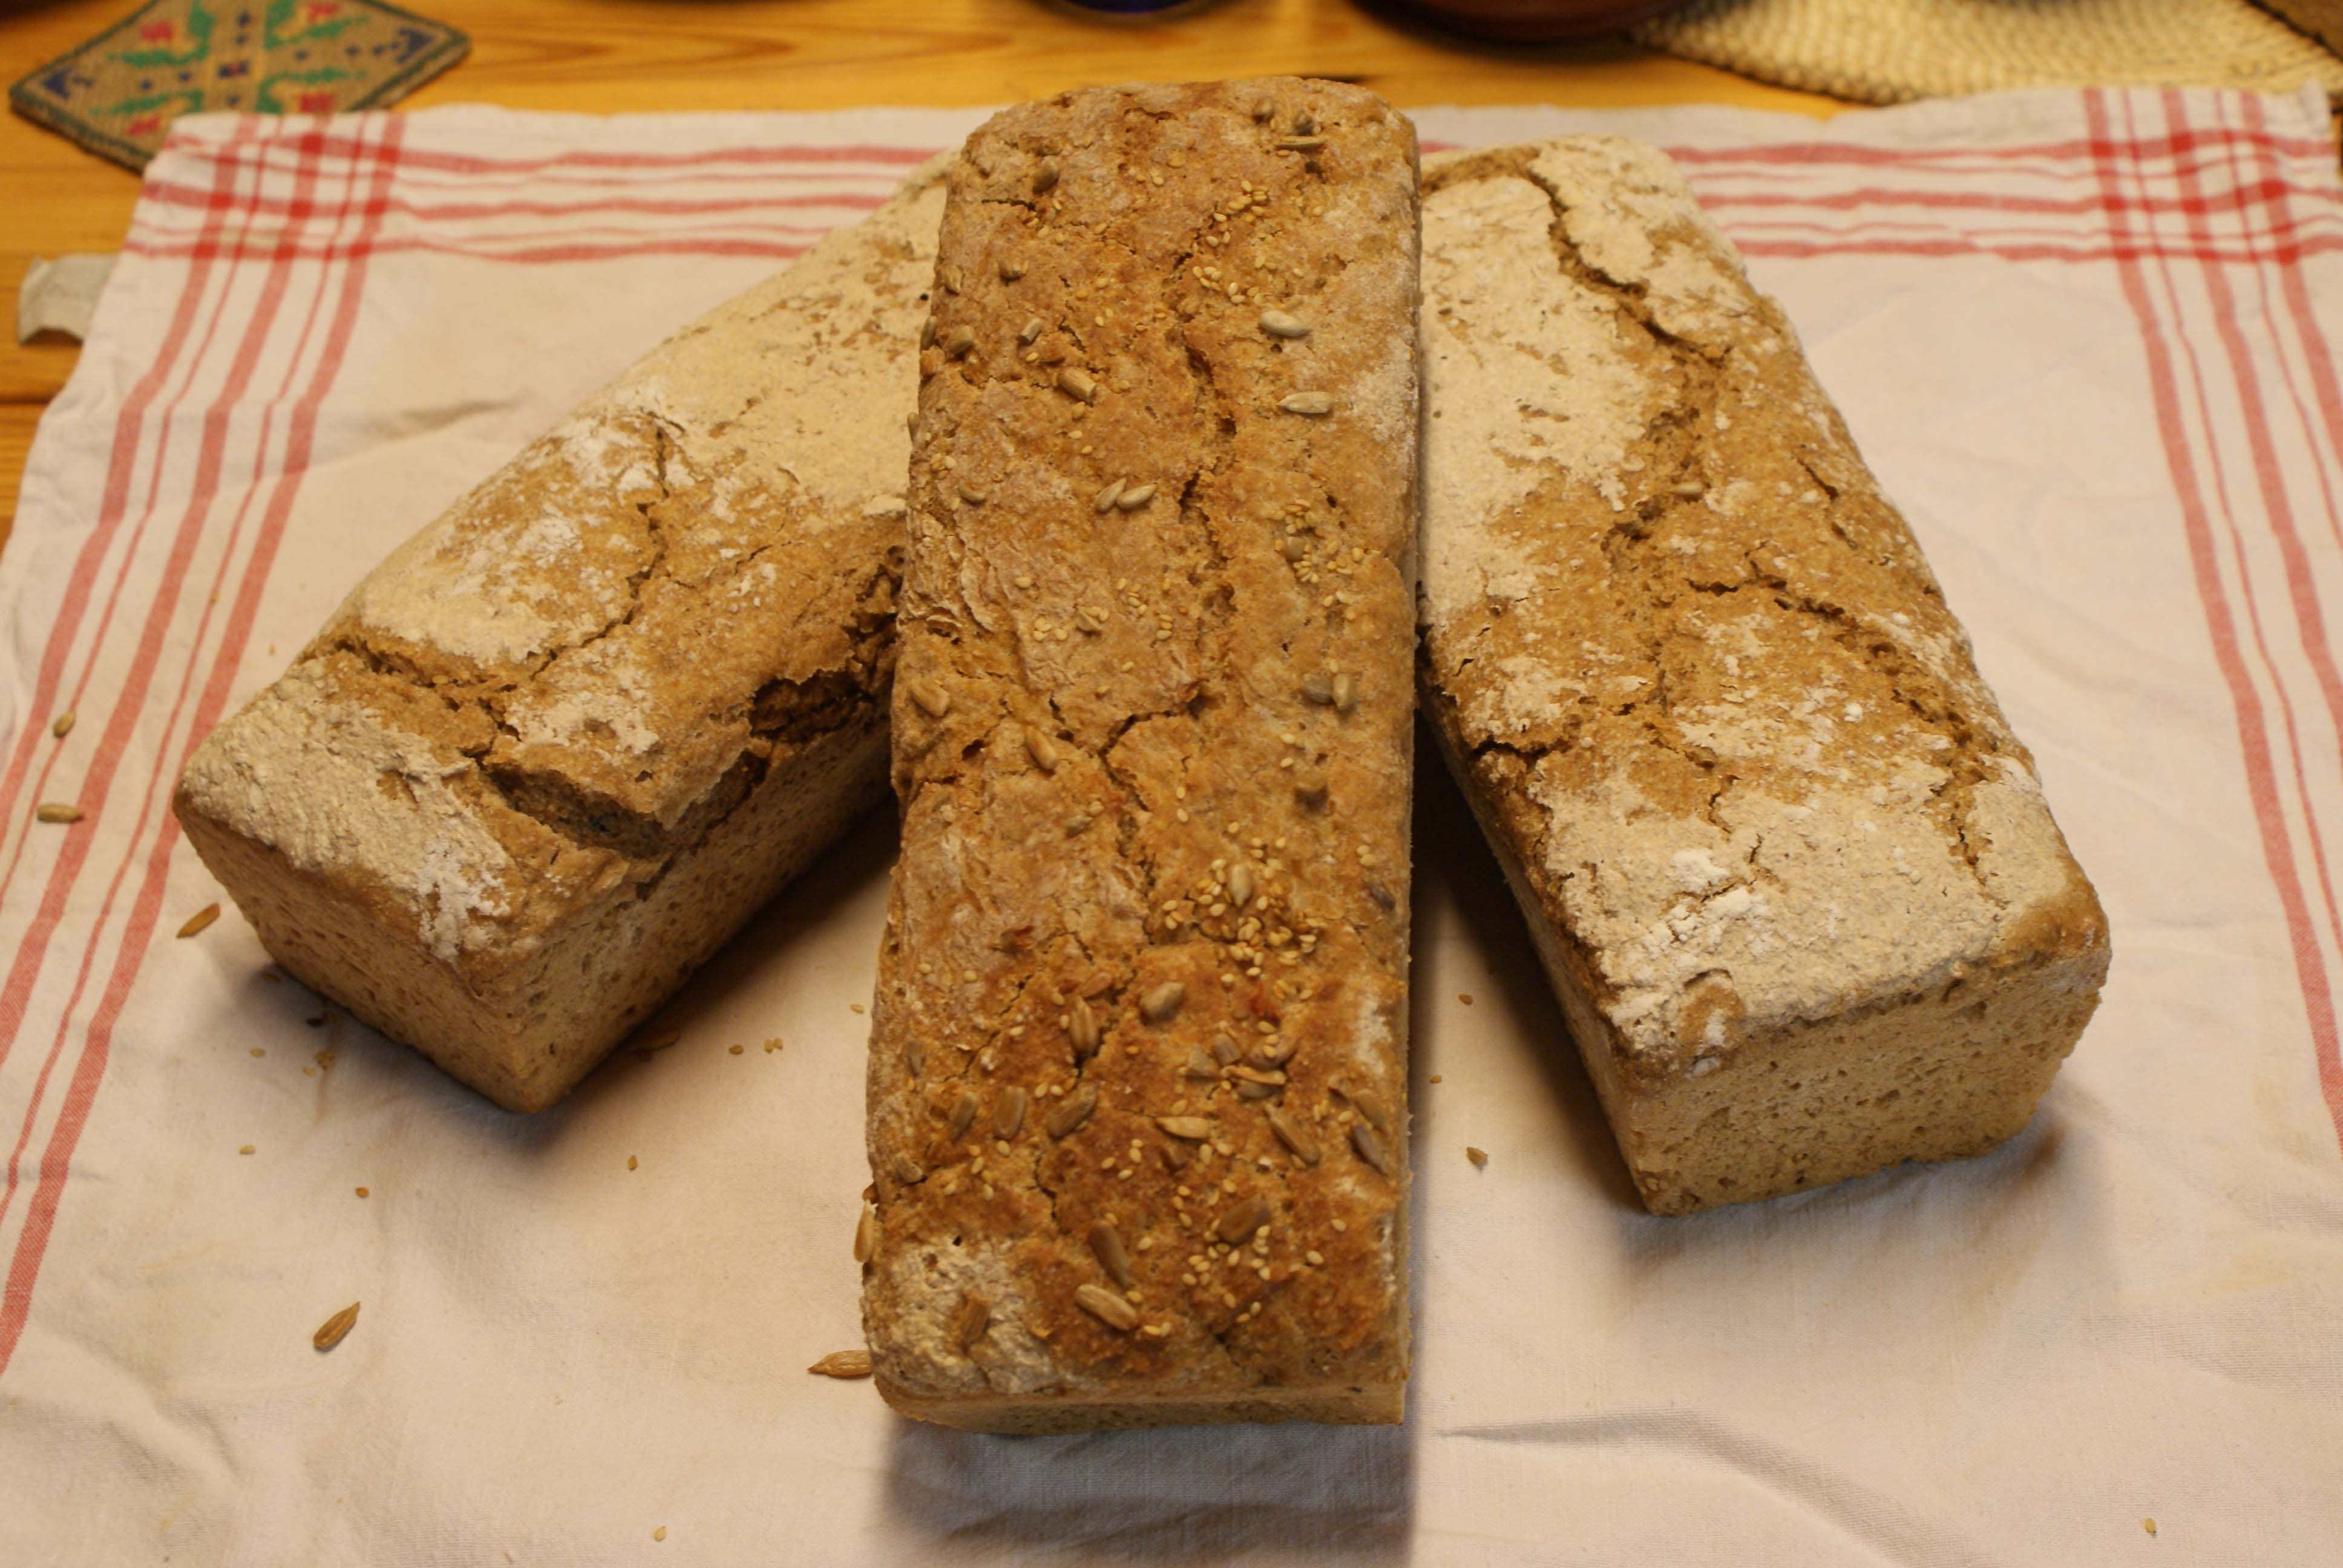 Brotduft in der Luft